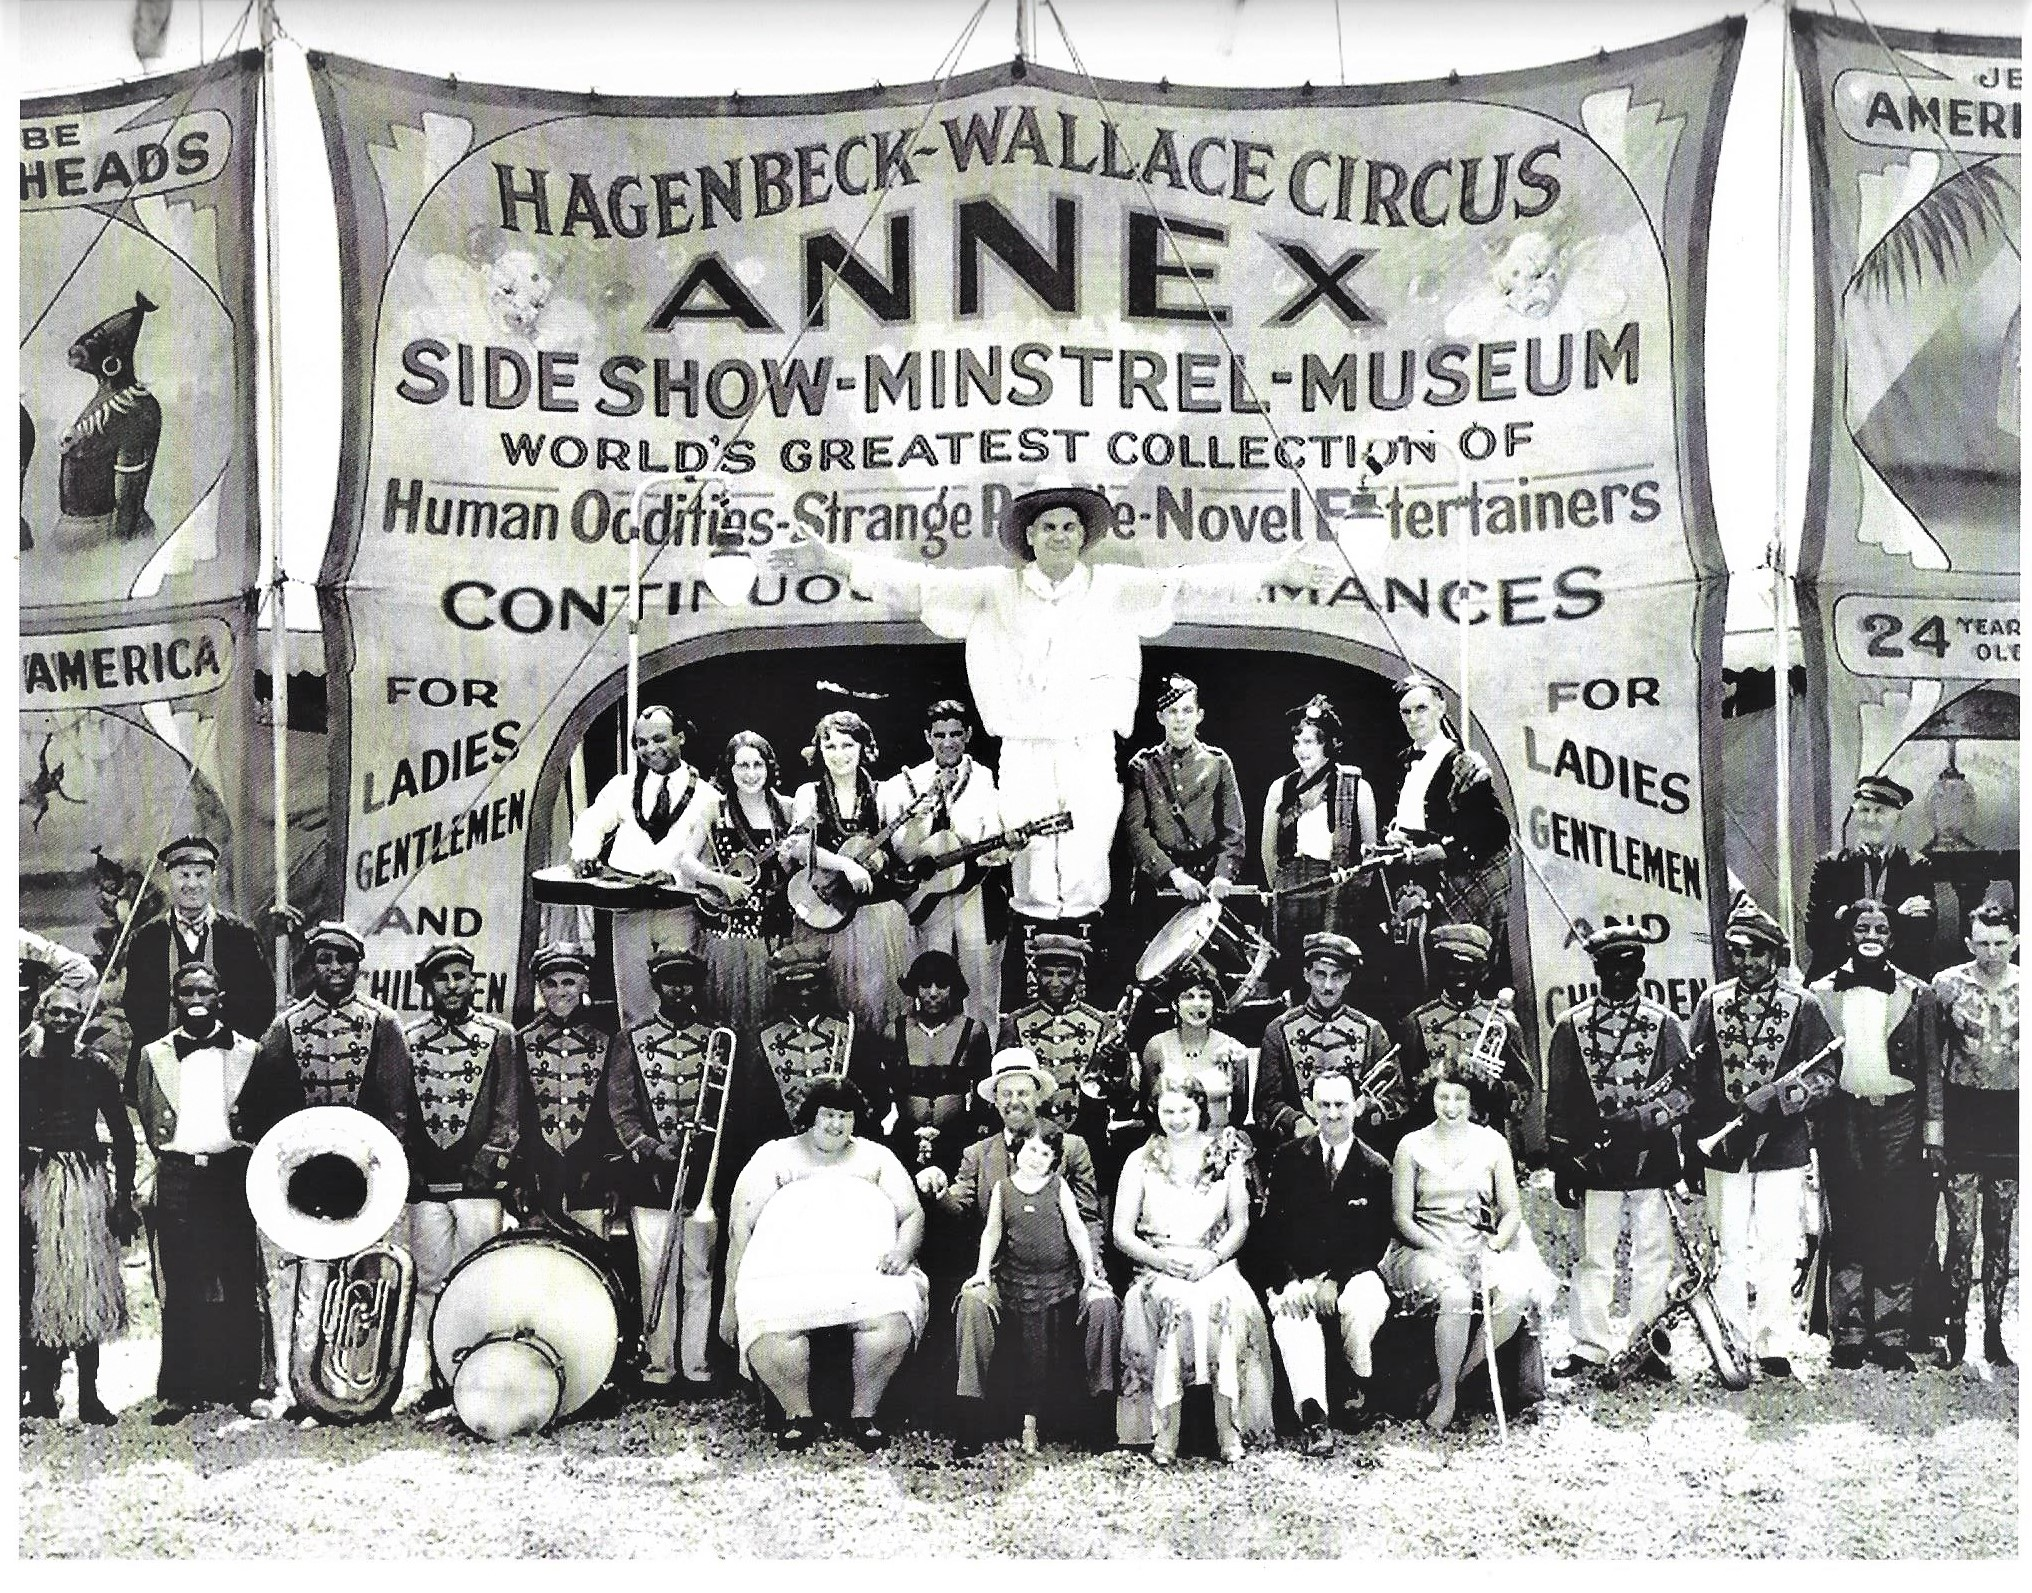 Hagenbeck & Wallace Sideshow